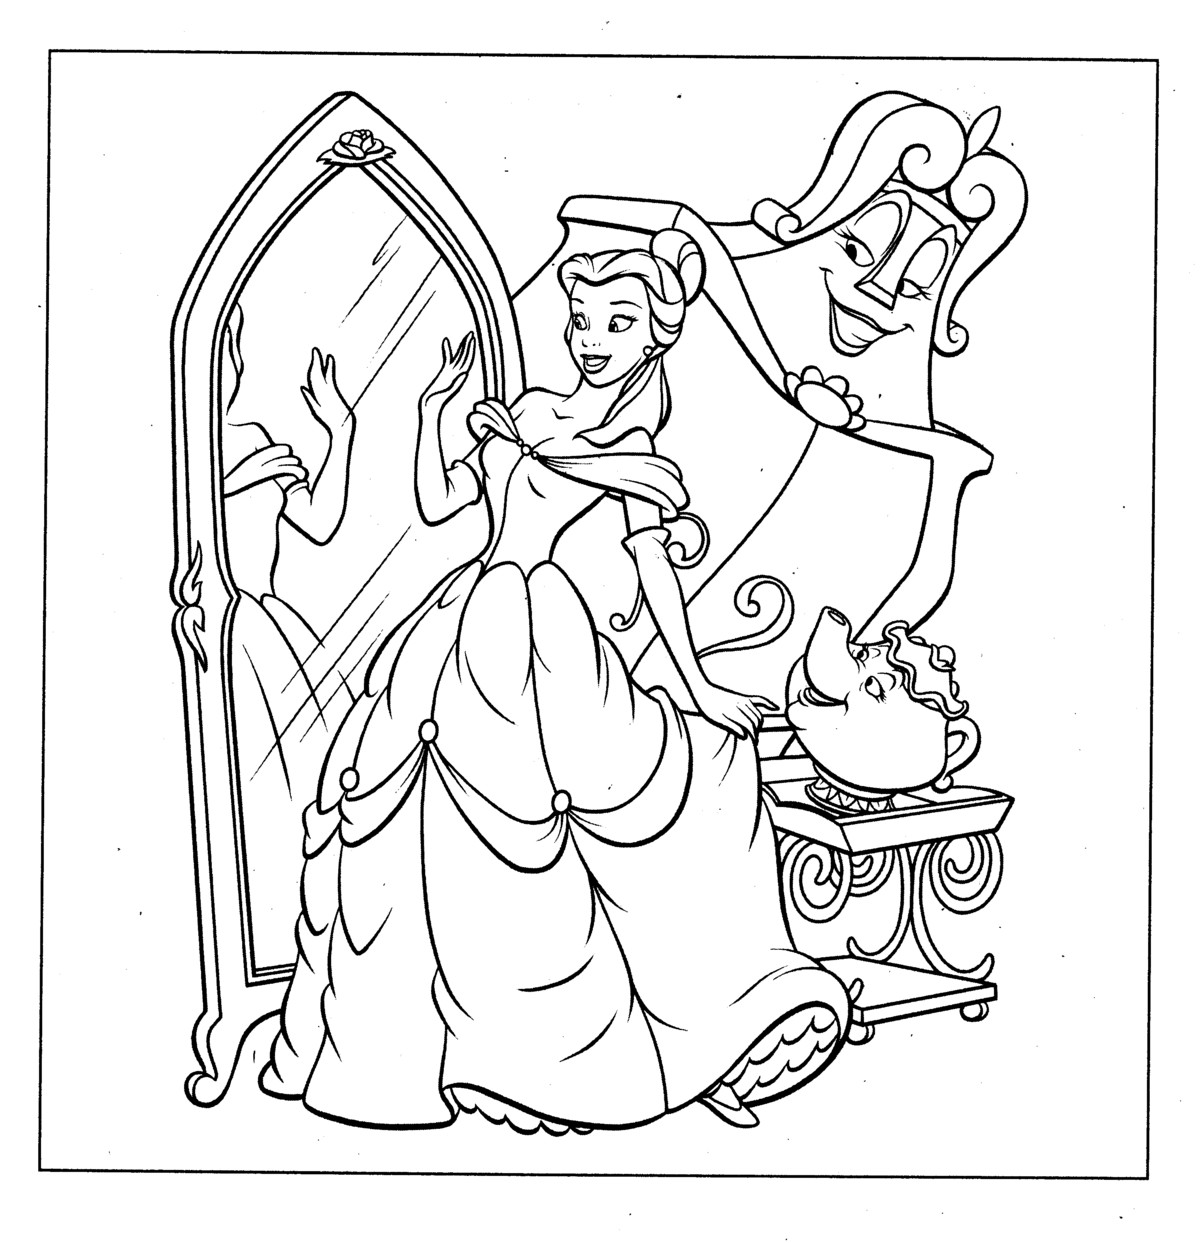 prncess coloring pages - photo#30